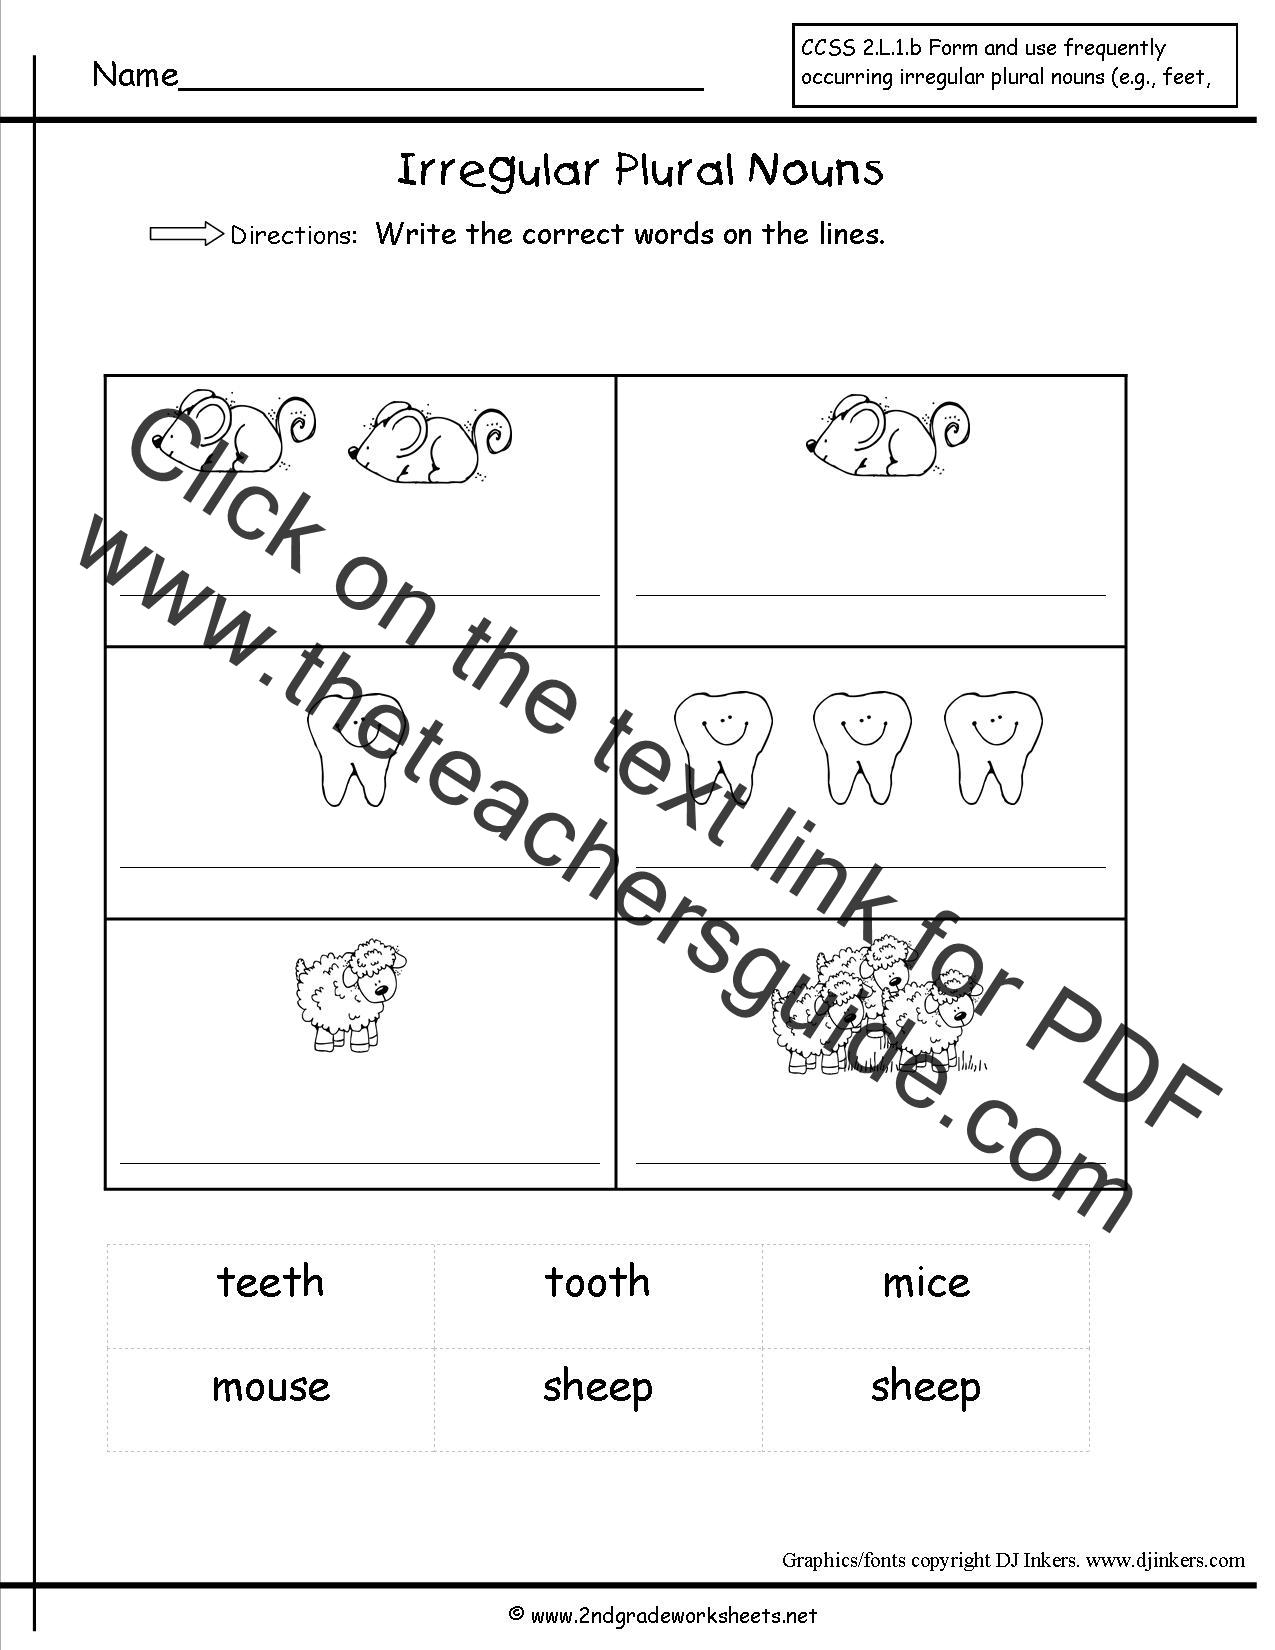 Worksheet Singular And Plural Worksheets For Kids singular and plural nouns worksheets irregular worksheet